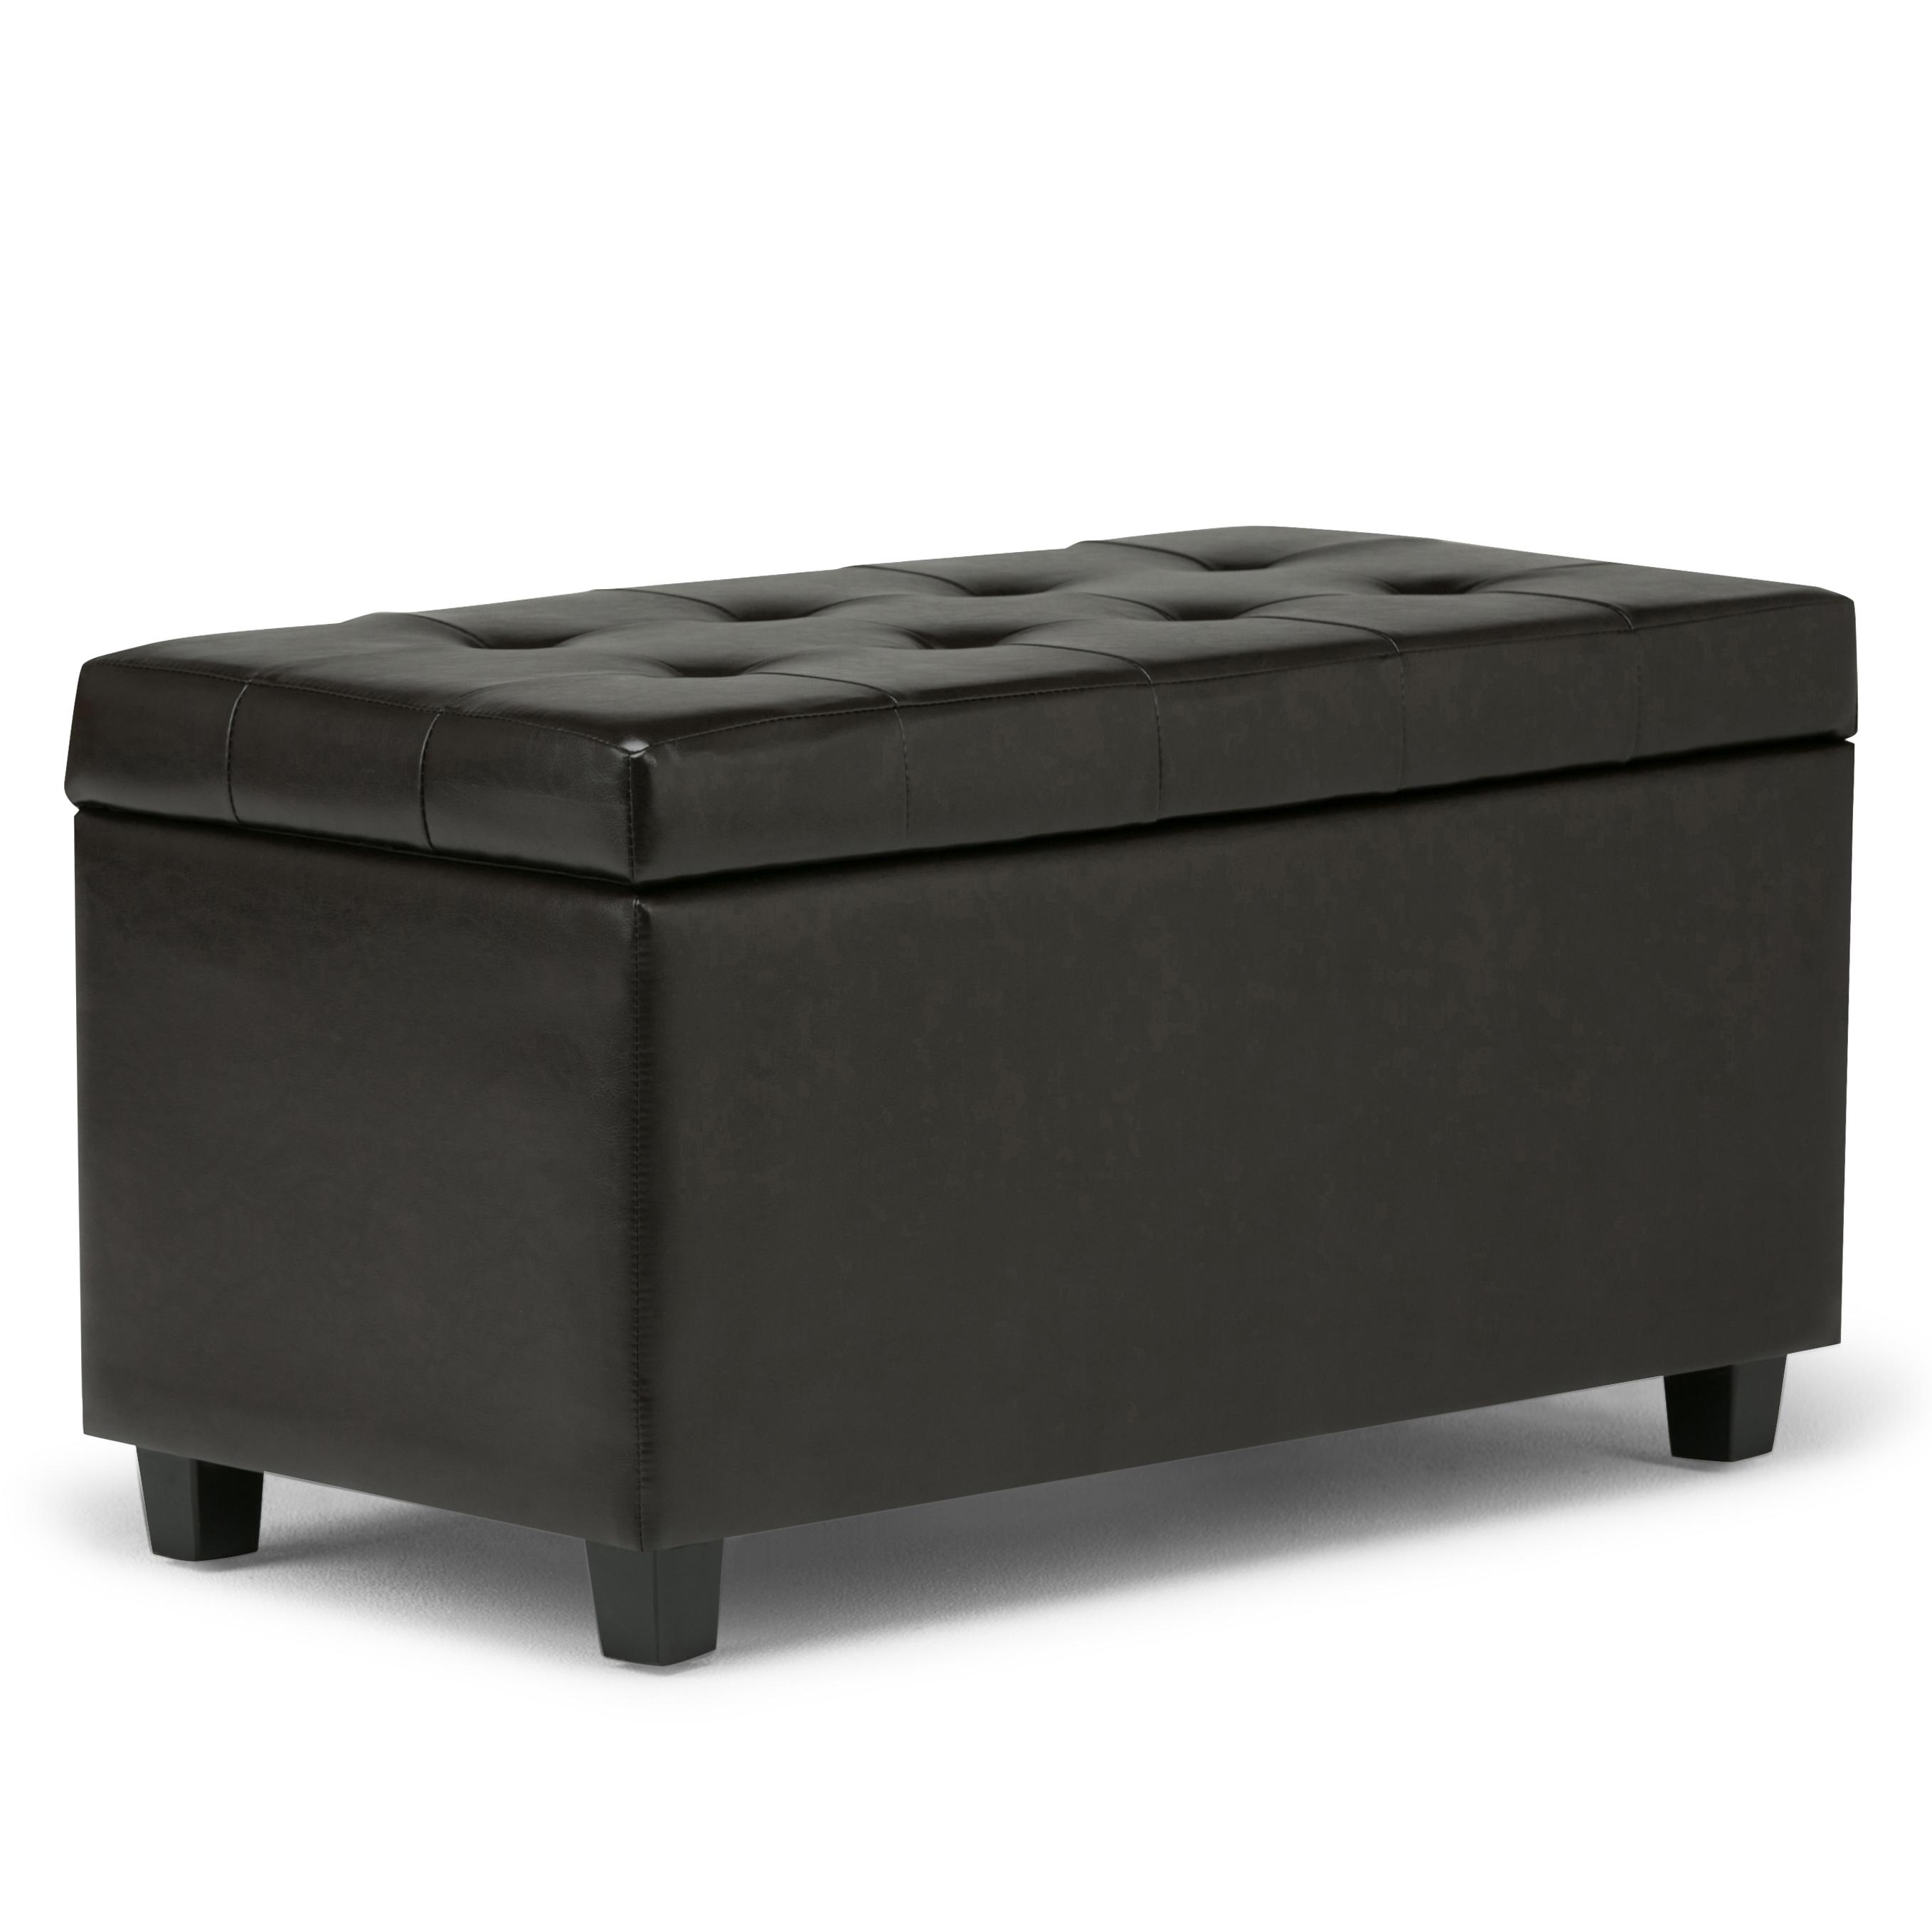 Simpli Home Cosmopolitan Faux Leather Rectangular Storage Ottoman Bench Brown